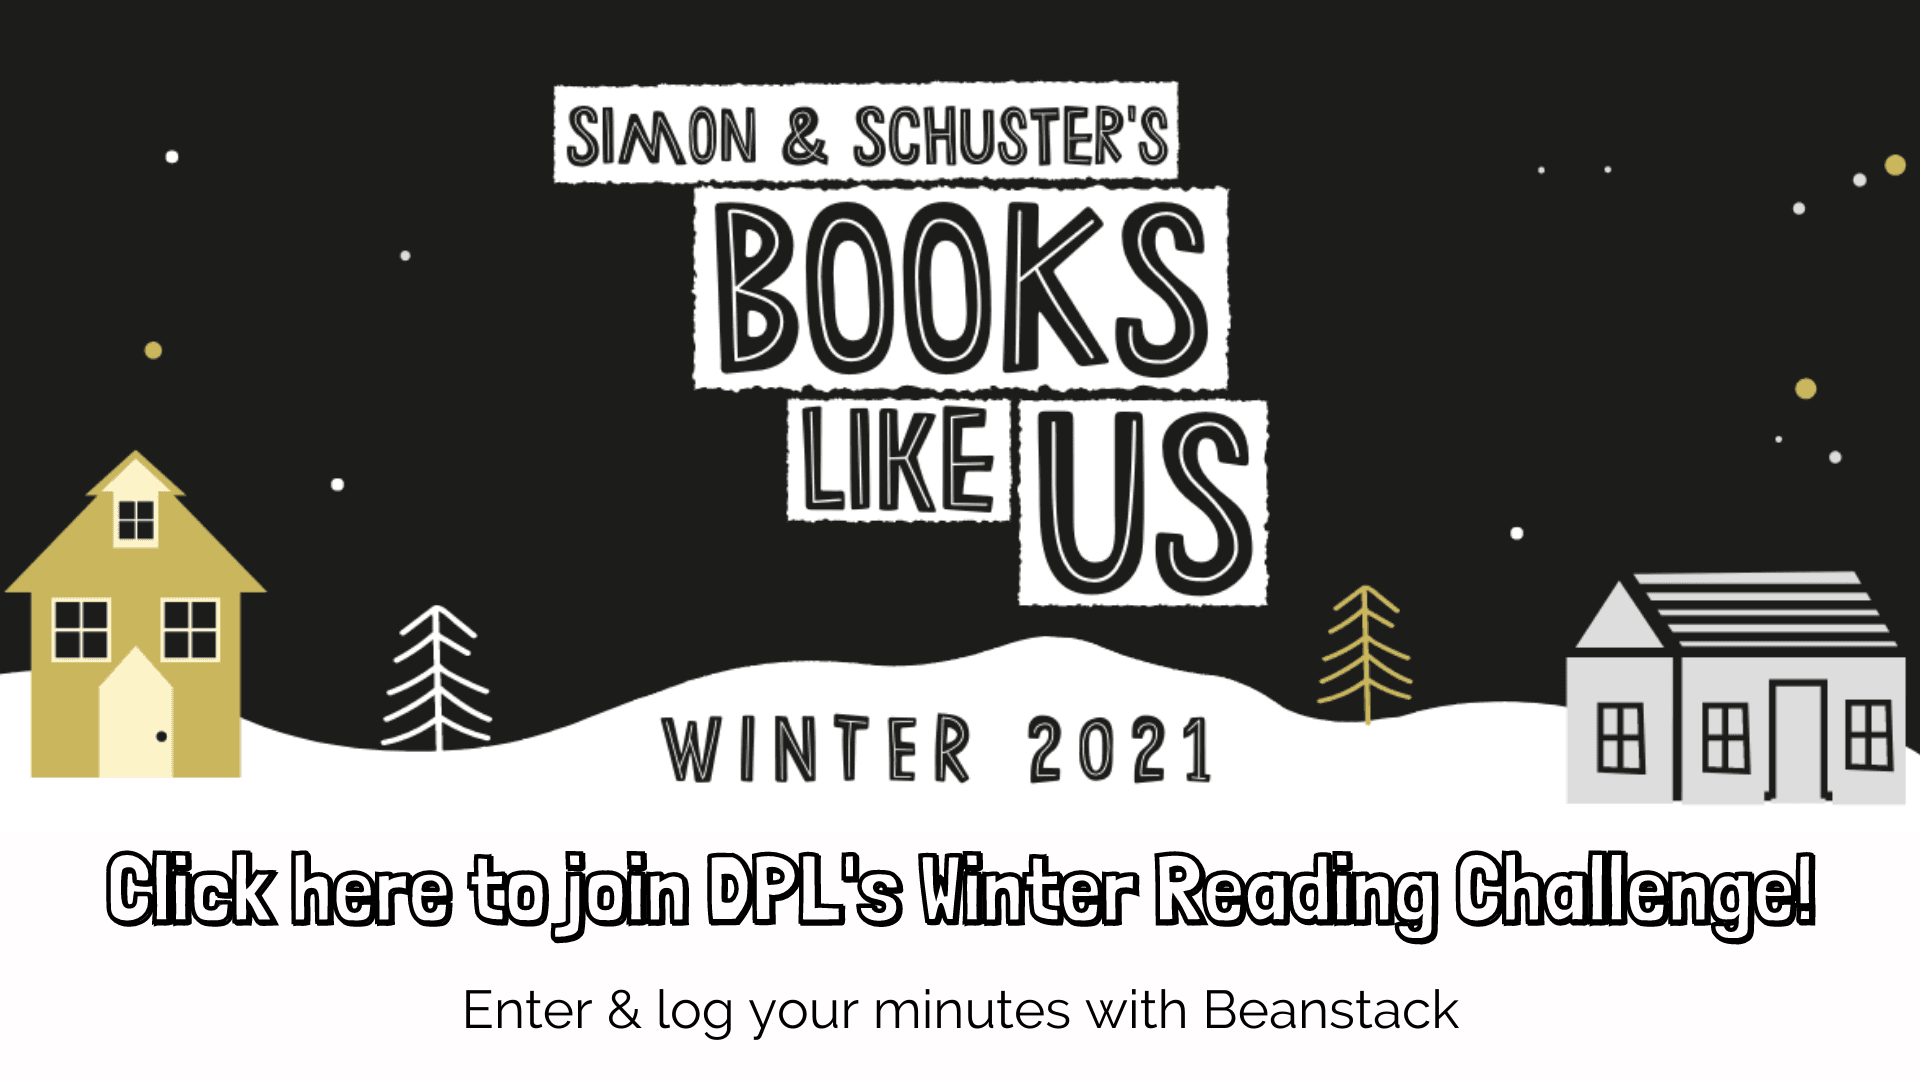 Winter Reading Challenge 2021